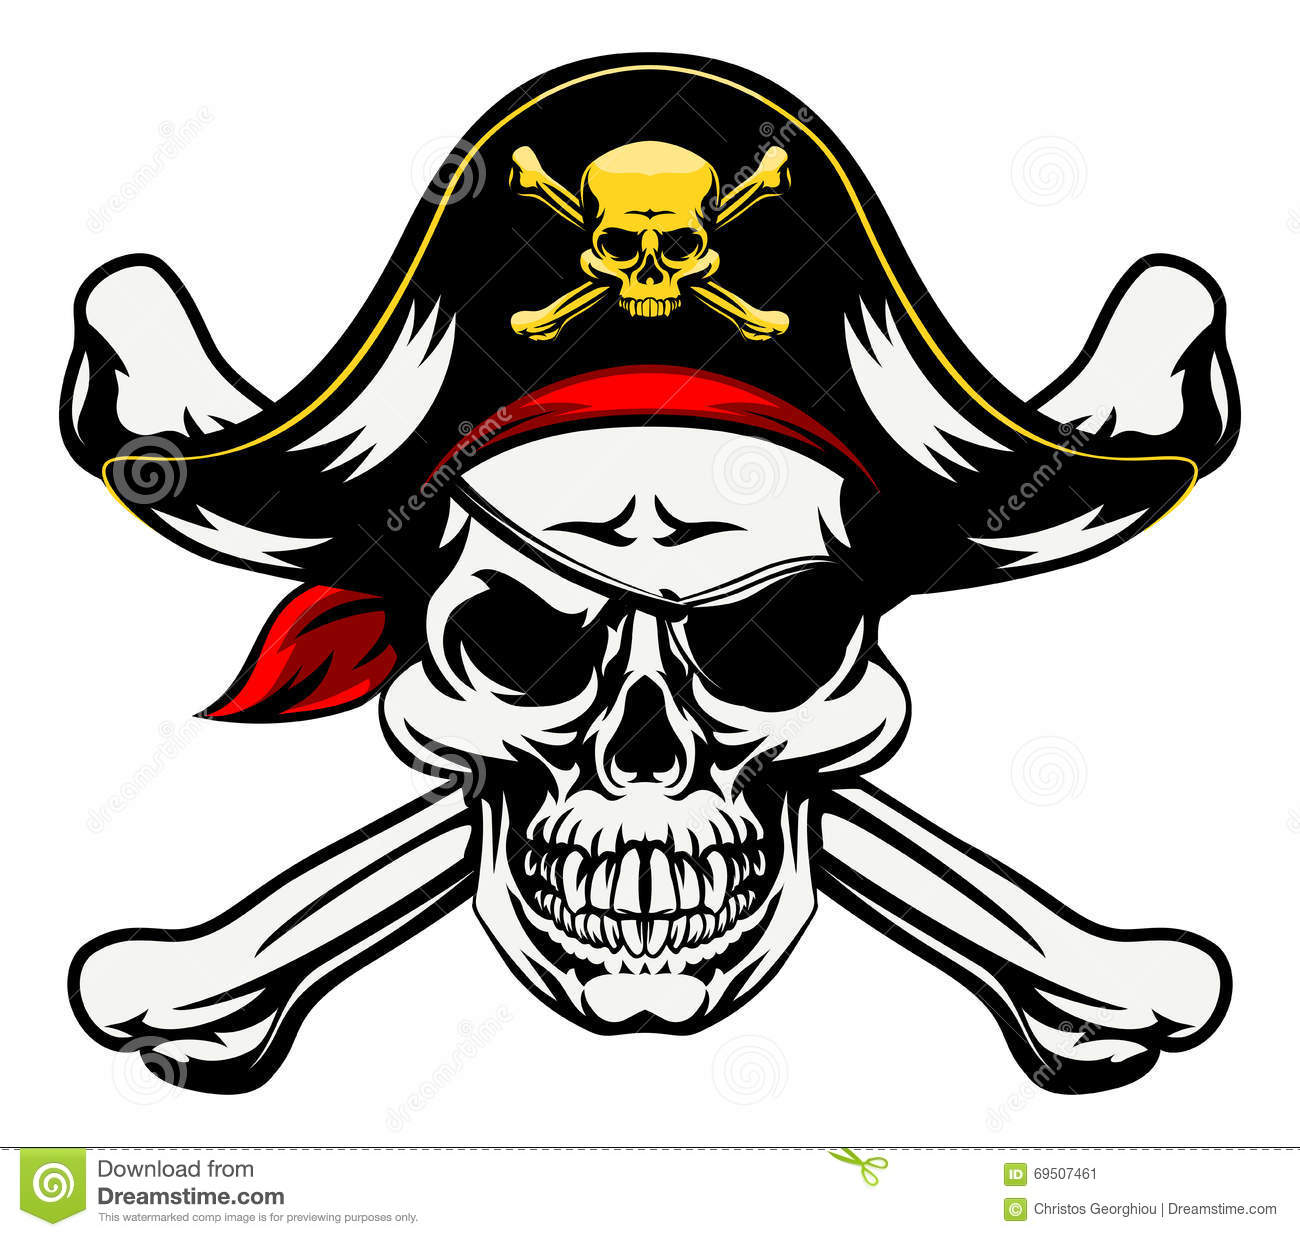 ... skull and crossbones dressed in pirate costume with hat and eye patch